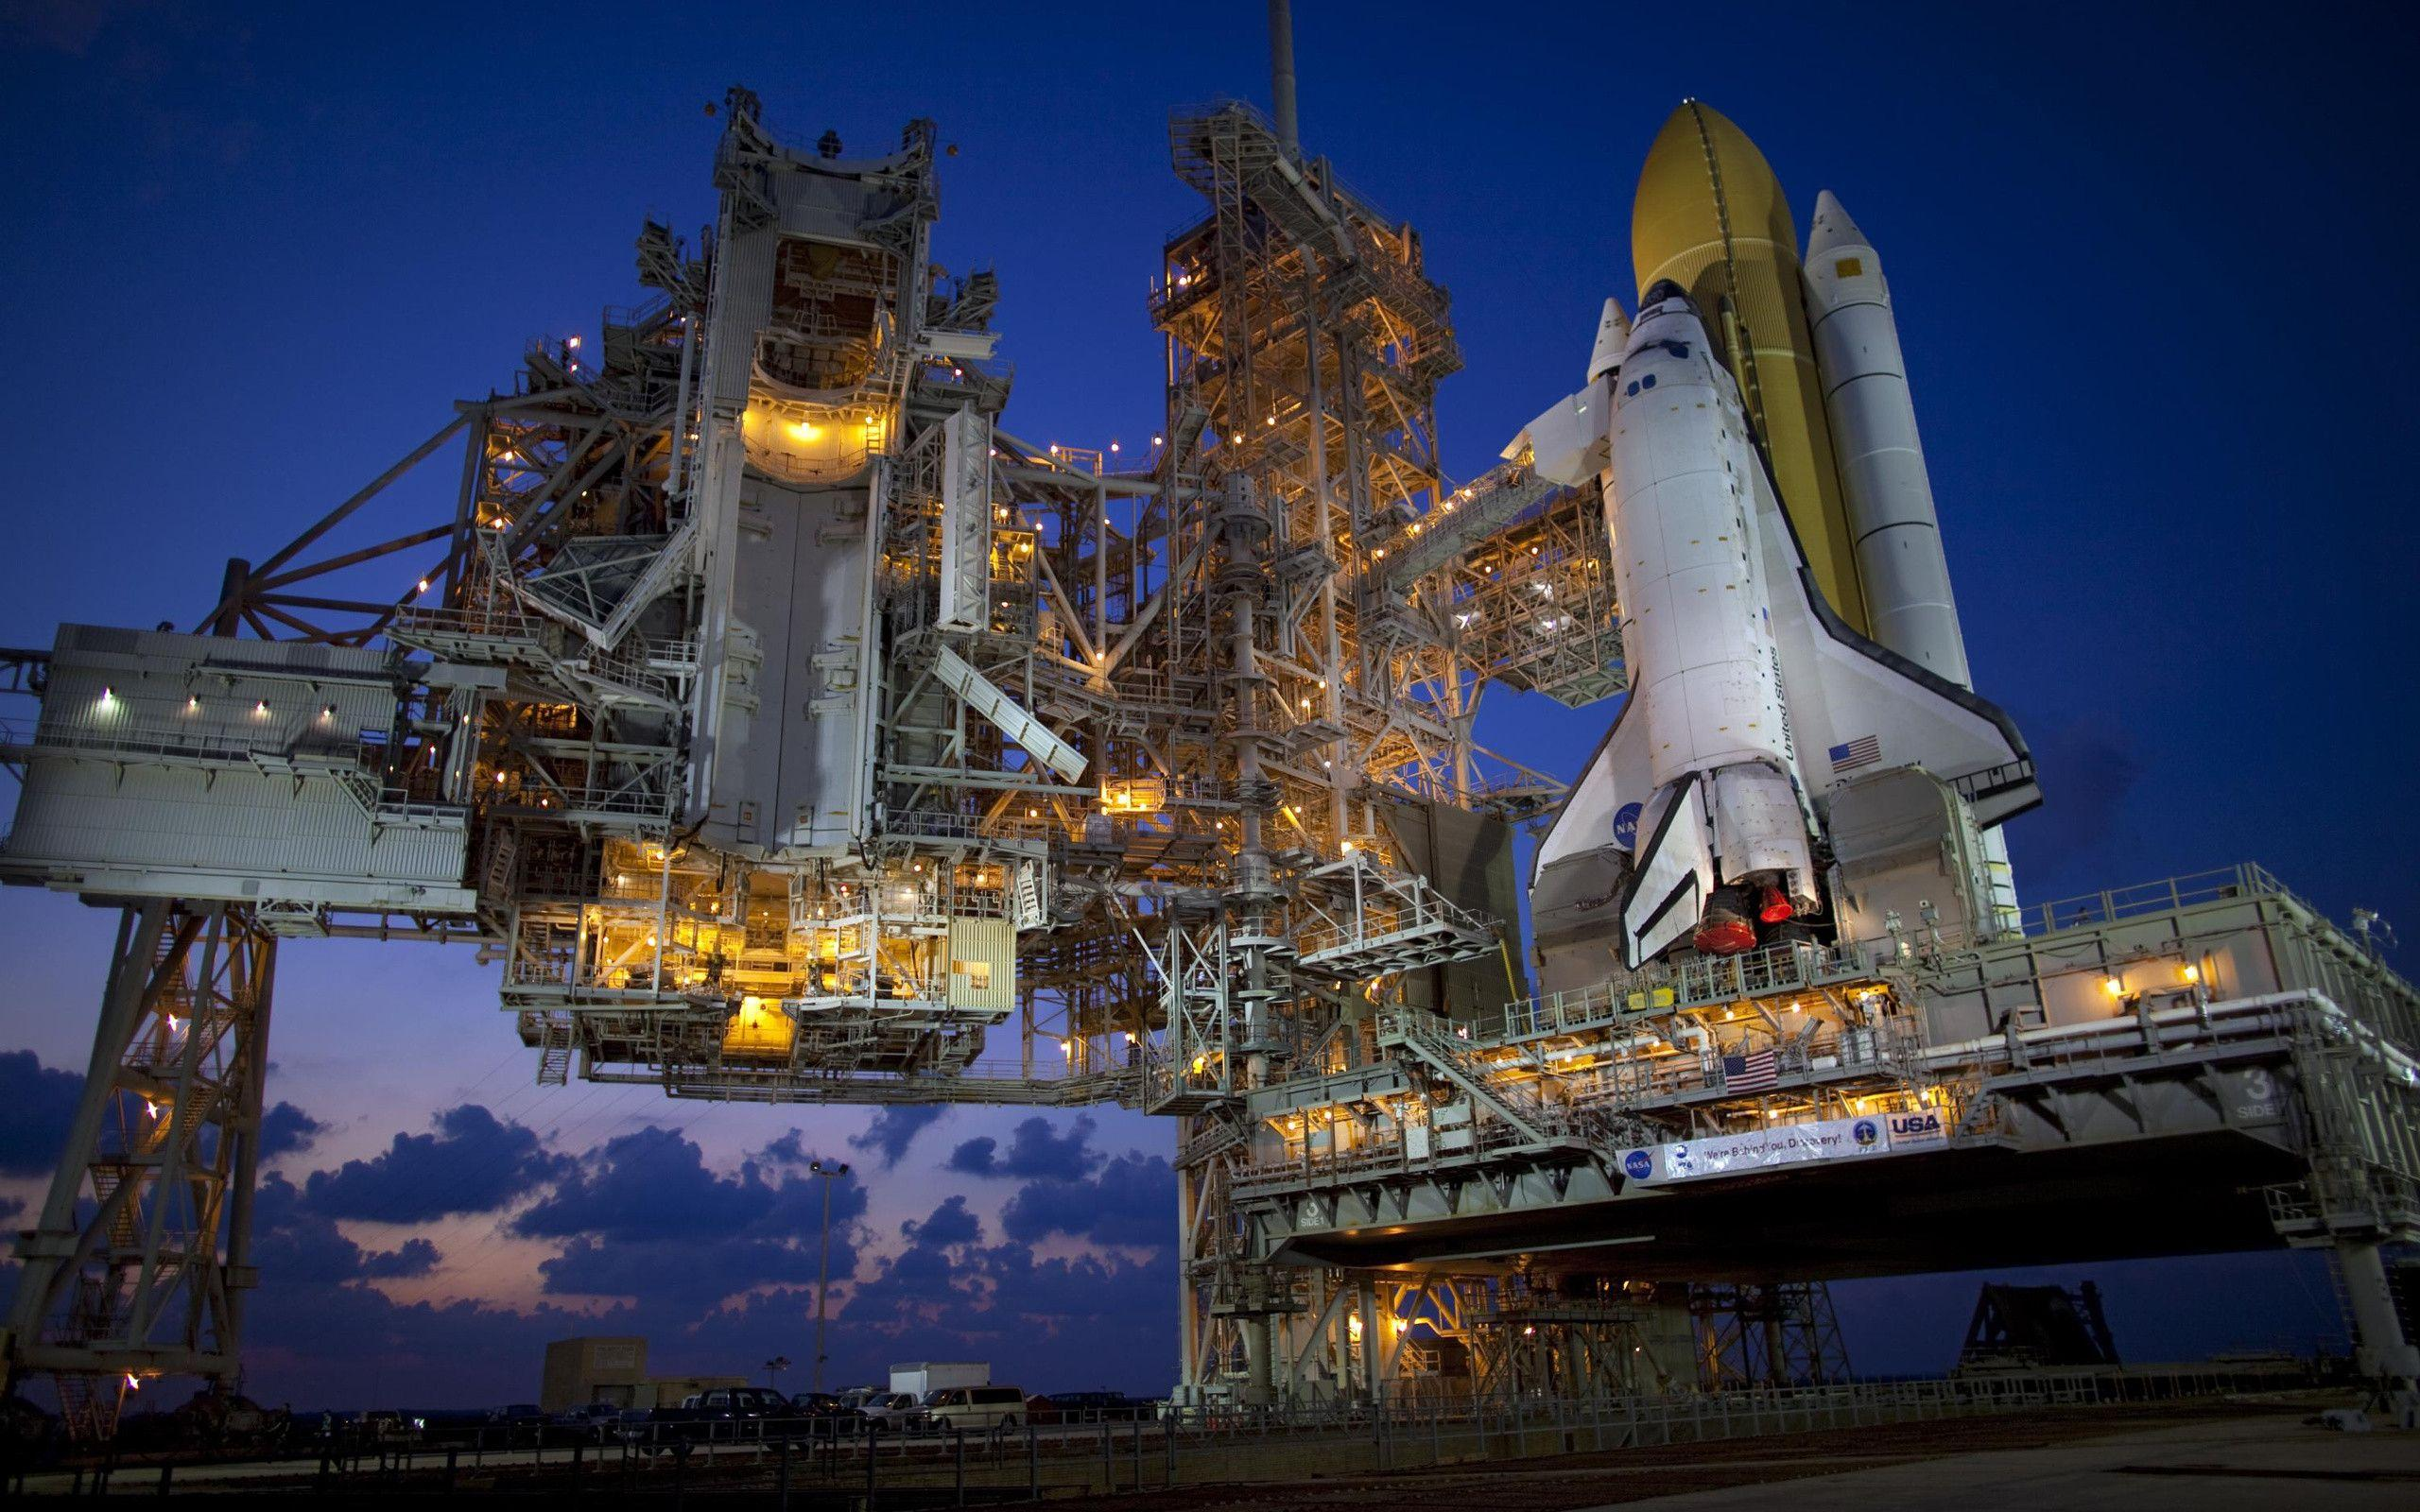 space shuttle space background - photo #5